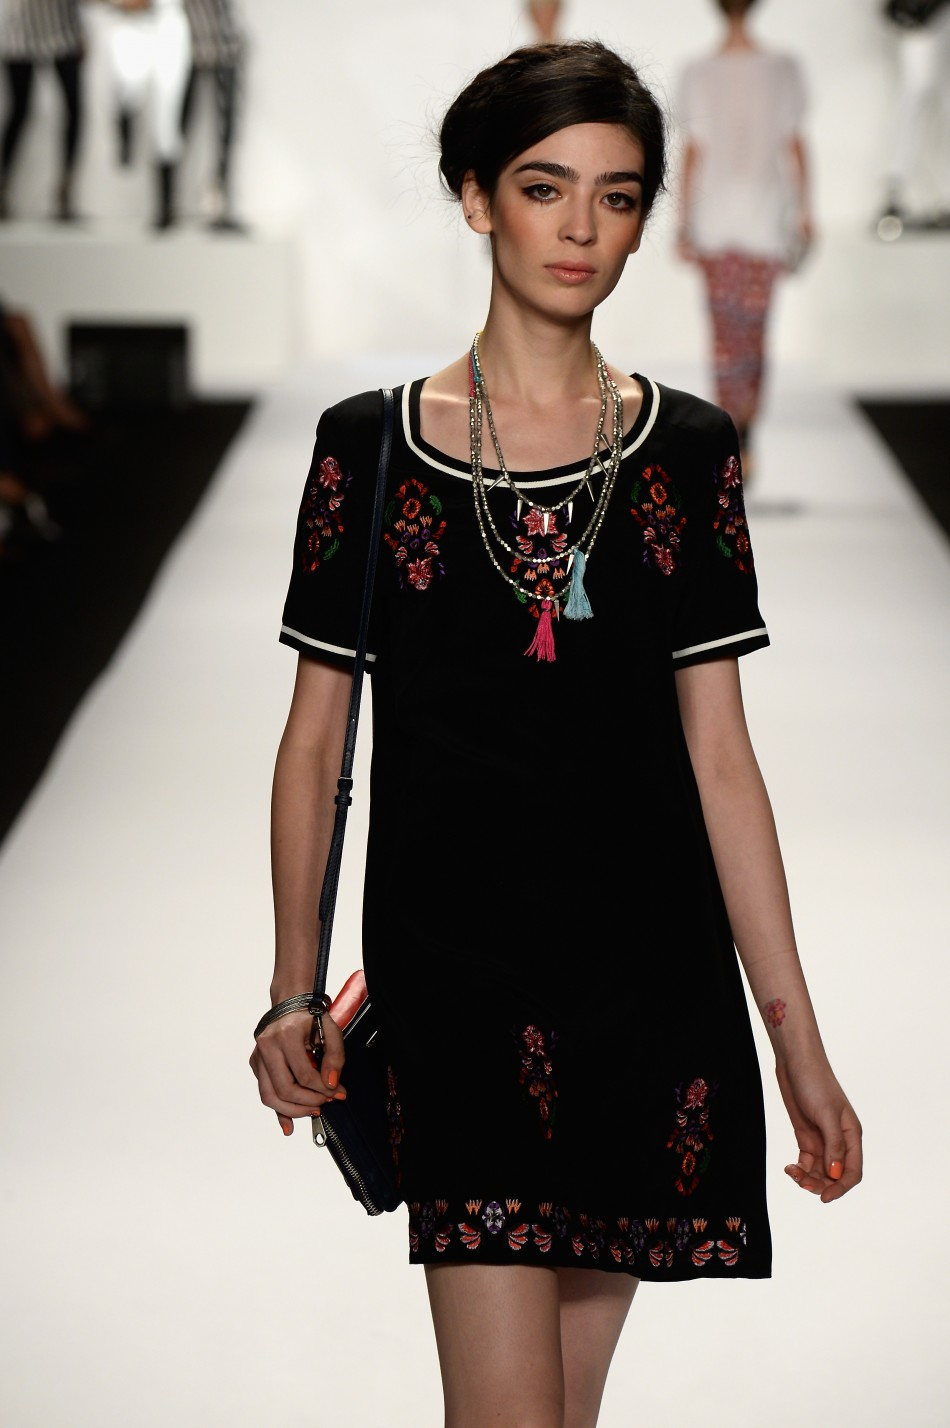 20591-rebecca-minkoff-spring-2014-new-york-fashion-week.jpg